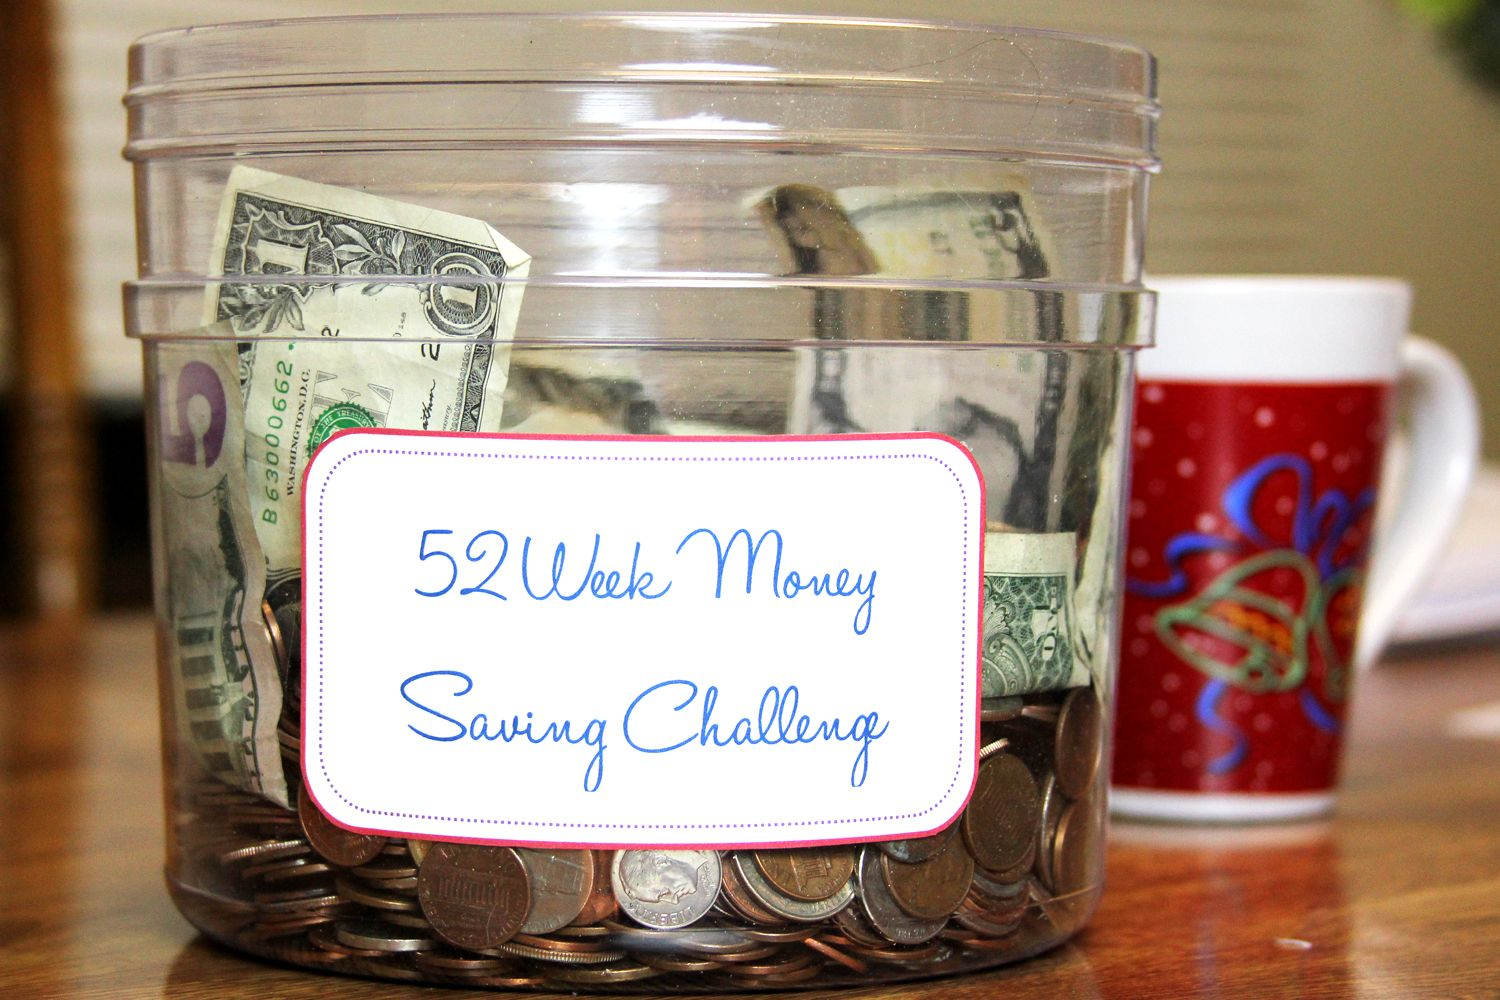 How would you like to have an extra $1,300 at the end of the year? Here is how to get there!